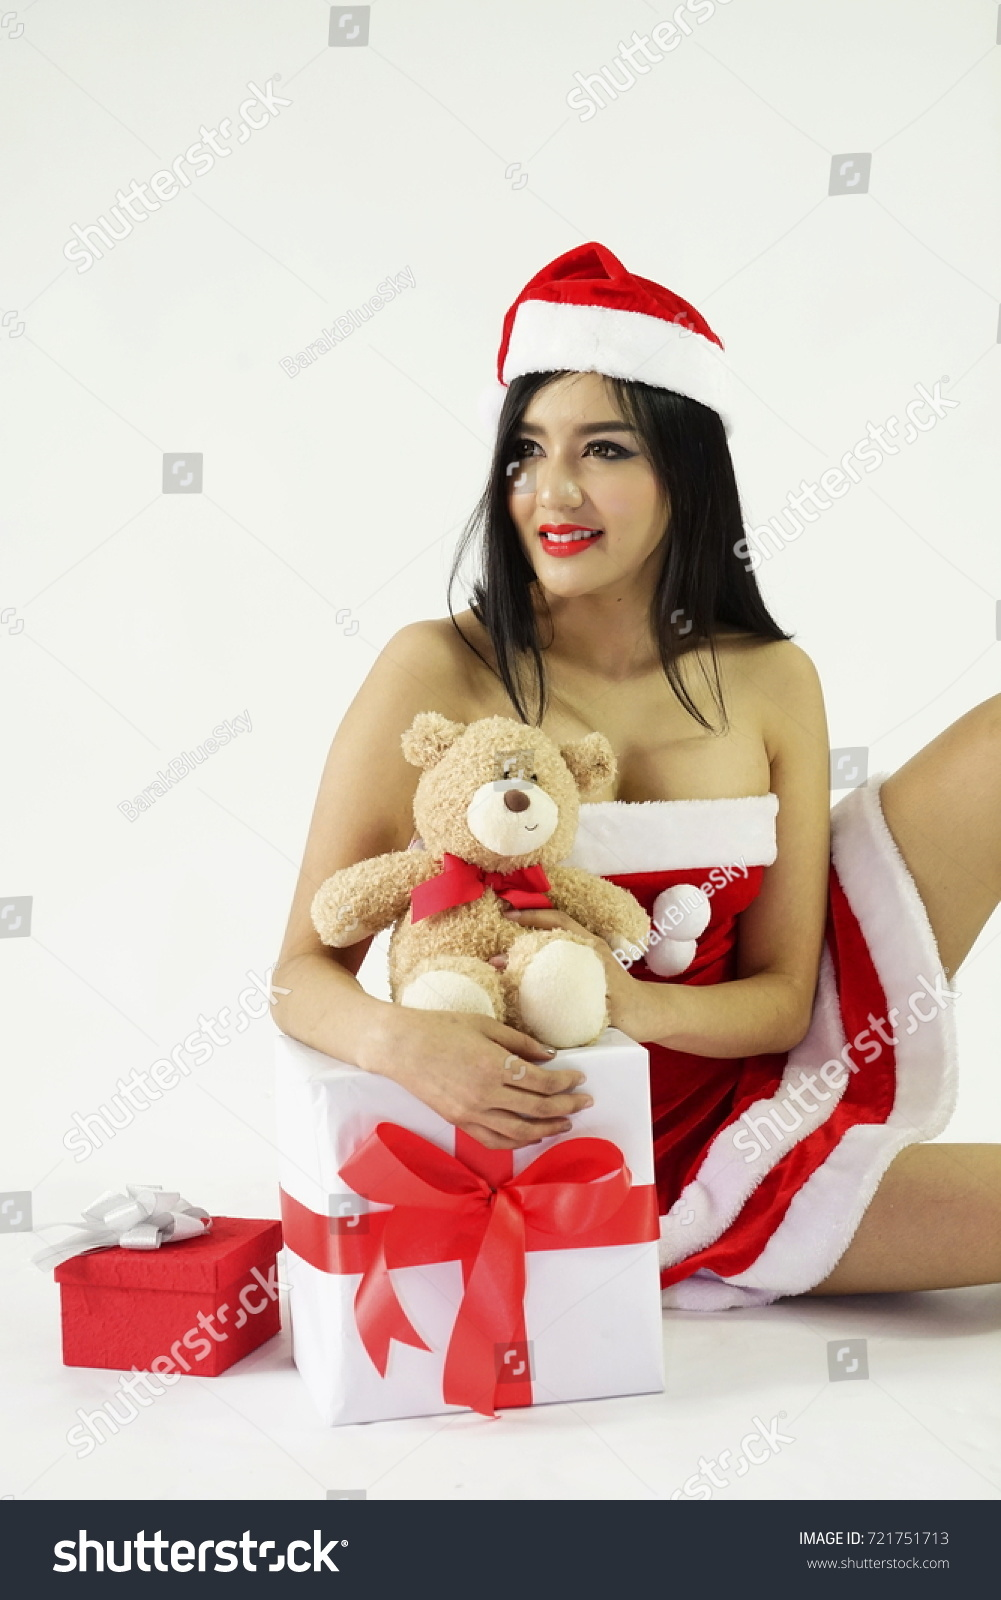 8c7be25c902c1 The woman with Santa dress and Santa Hat and teddy bear and gift boxes.  Women